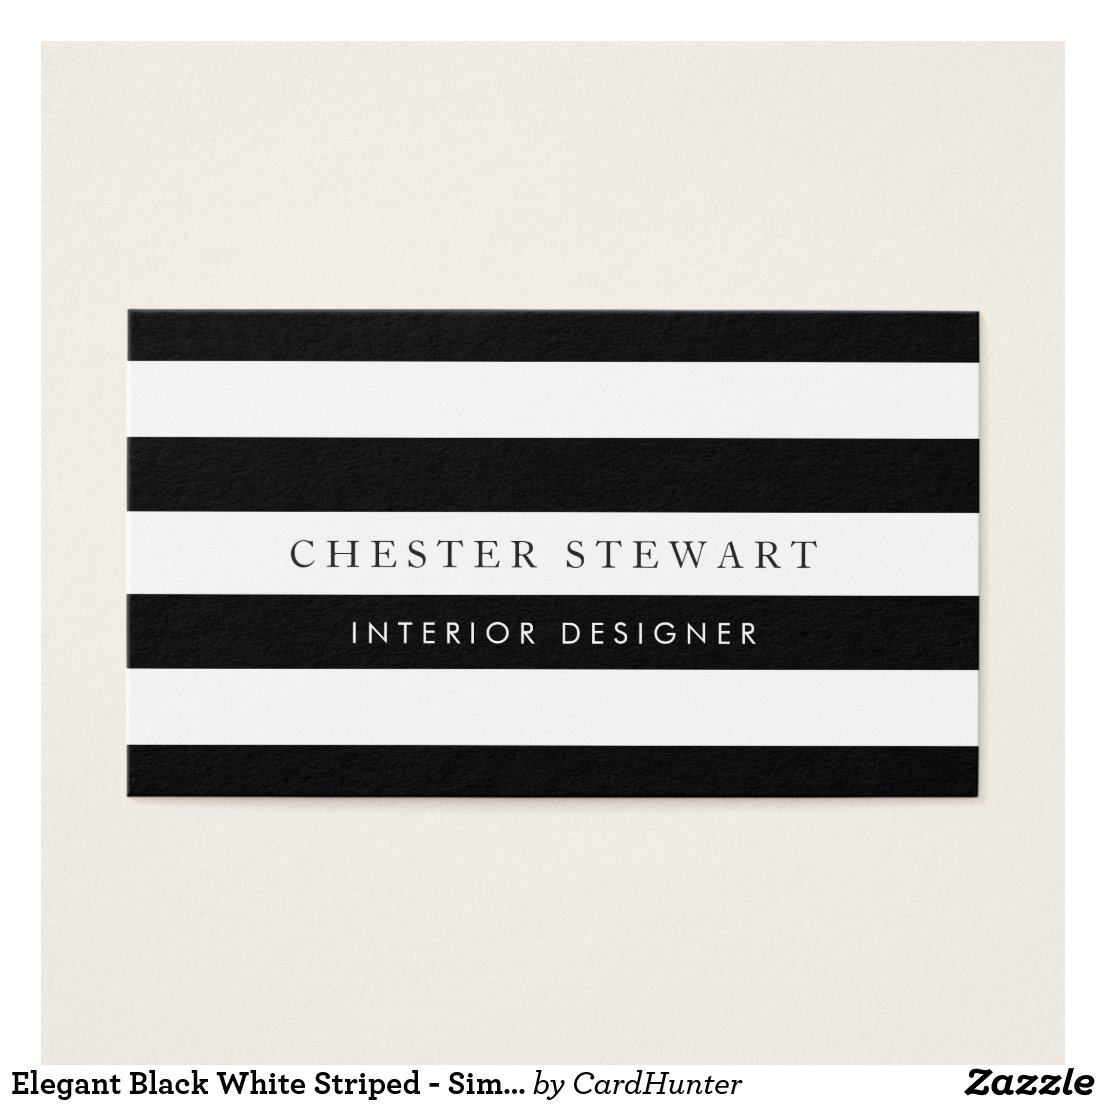 Interior designer business cards personalised business cards elegant black white striped simple minimalist reheart Images